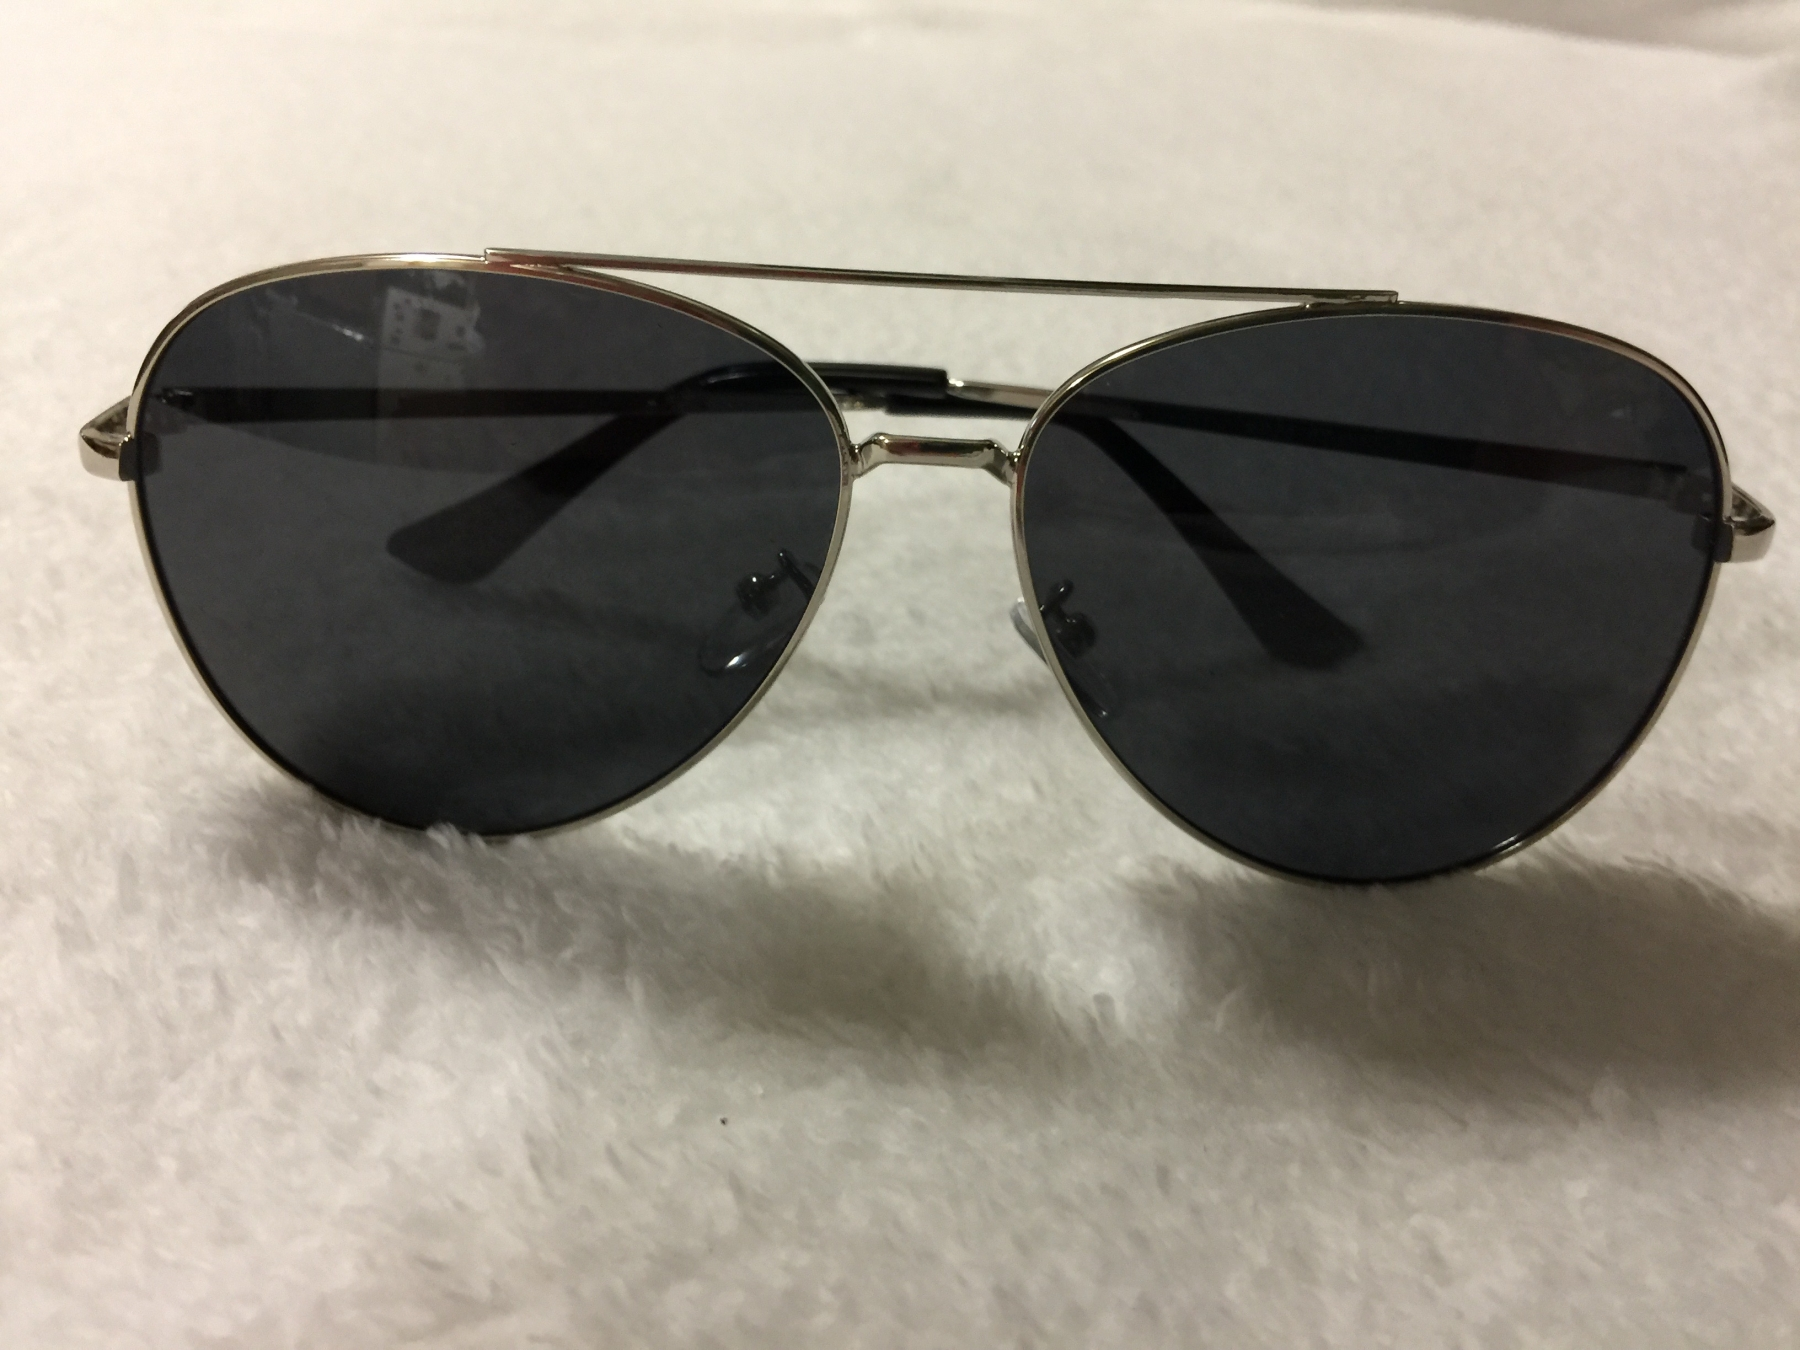 Great sunglasses for an amazing price!